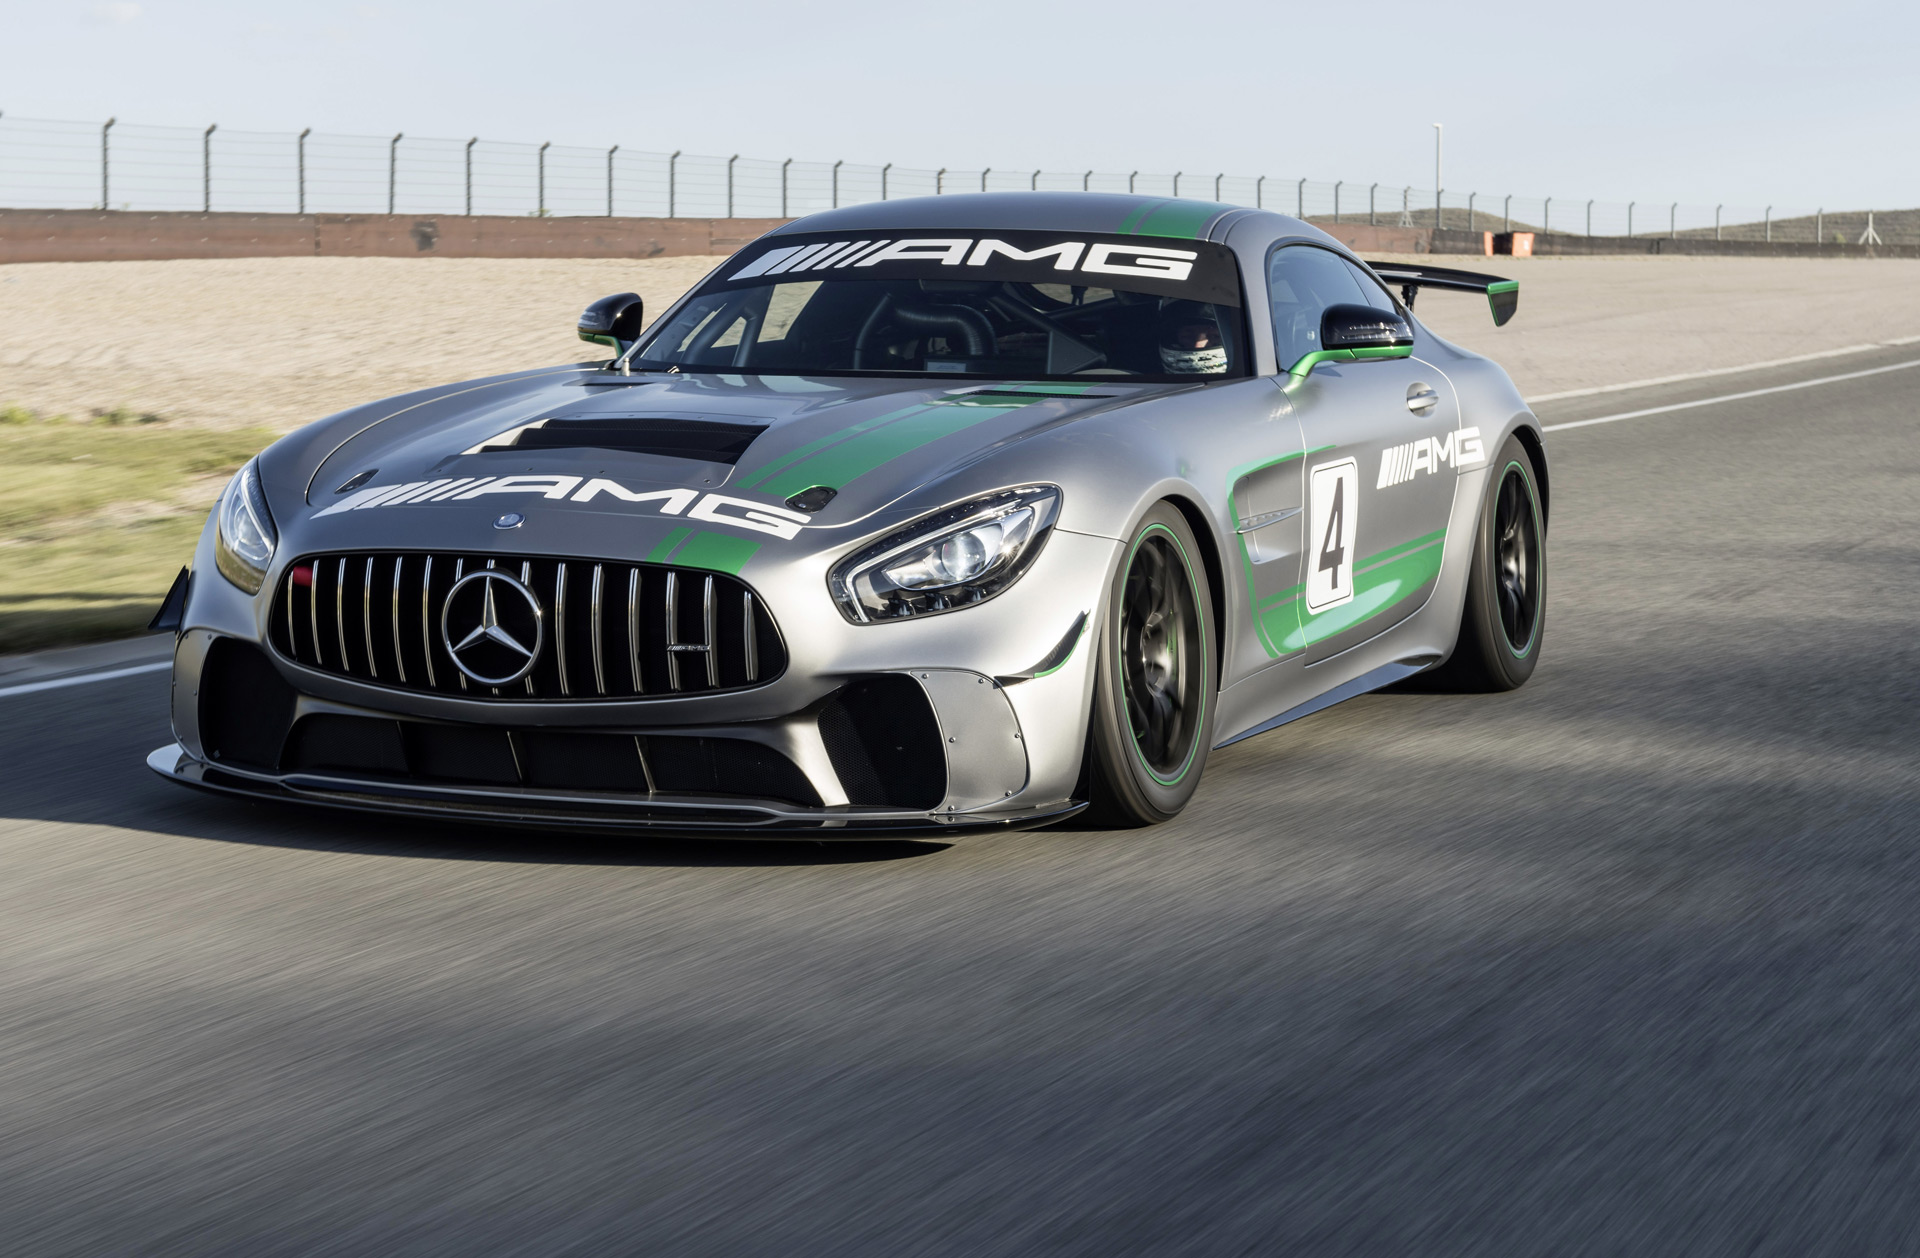 Mercedes Amg Reveals Gt4 Race Car